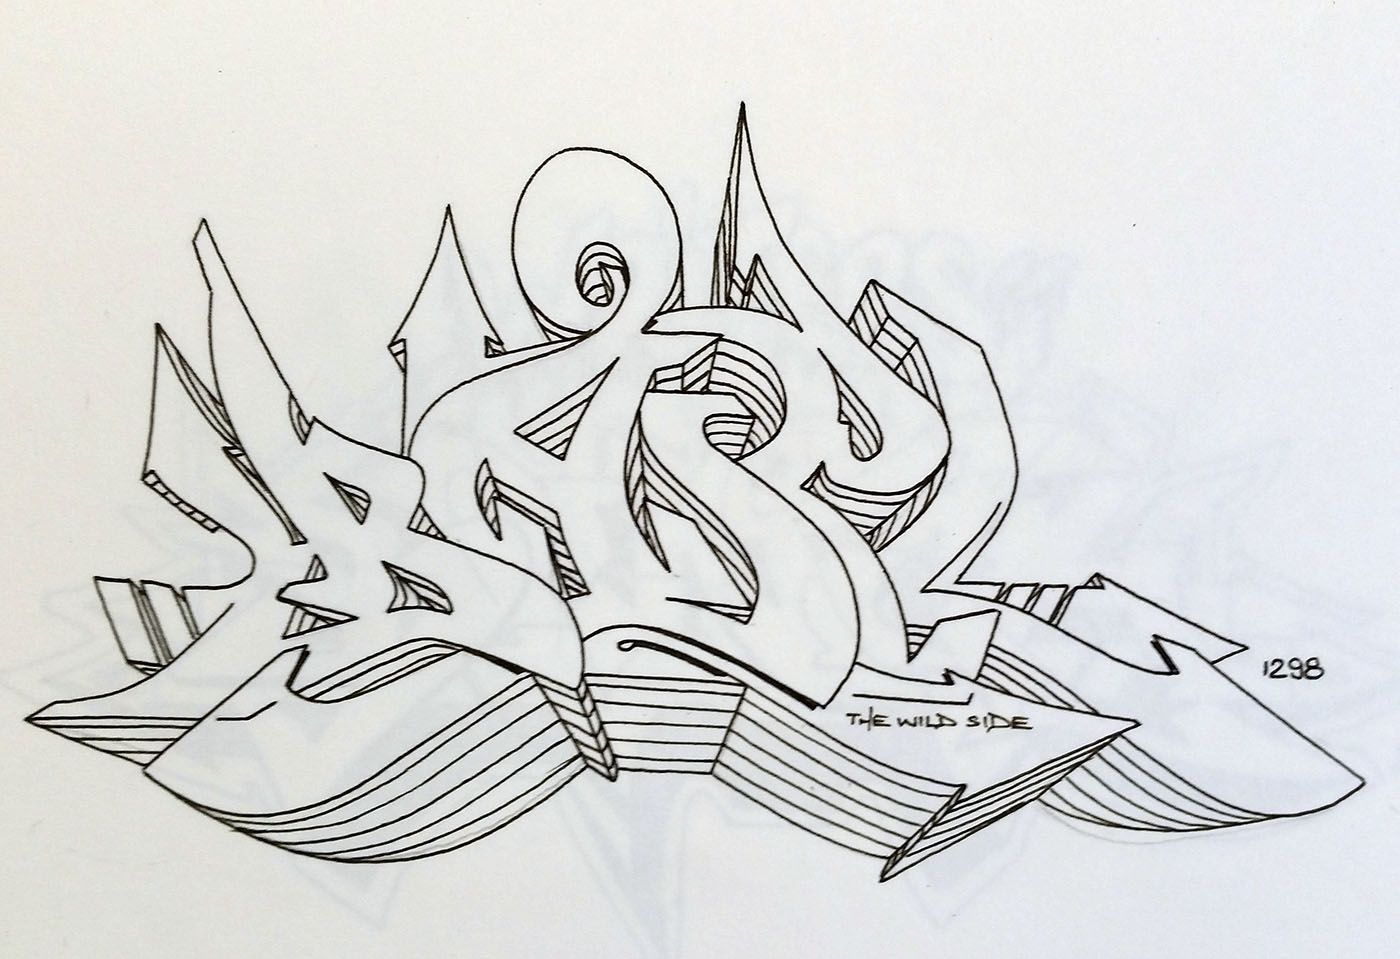 Sketches DARE (With images) Graffiti lettering